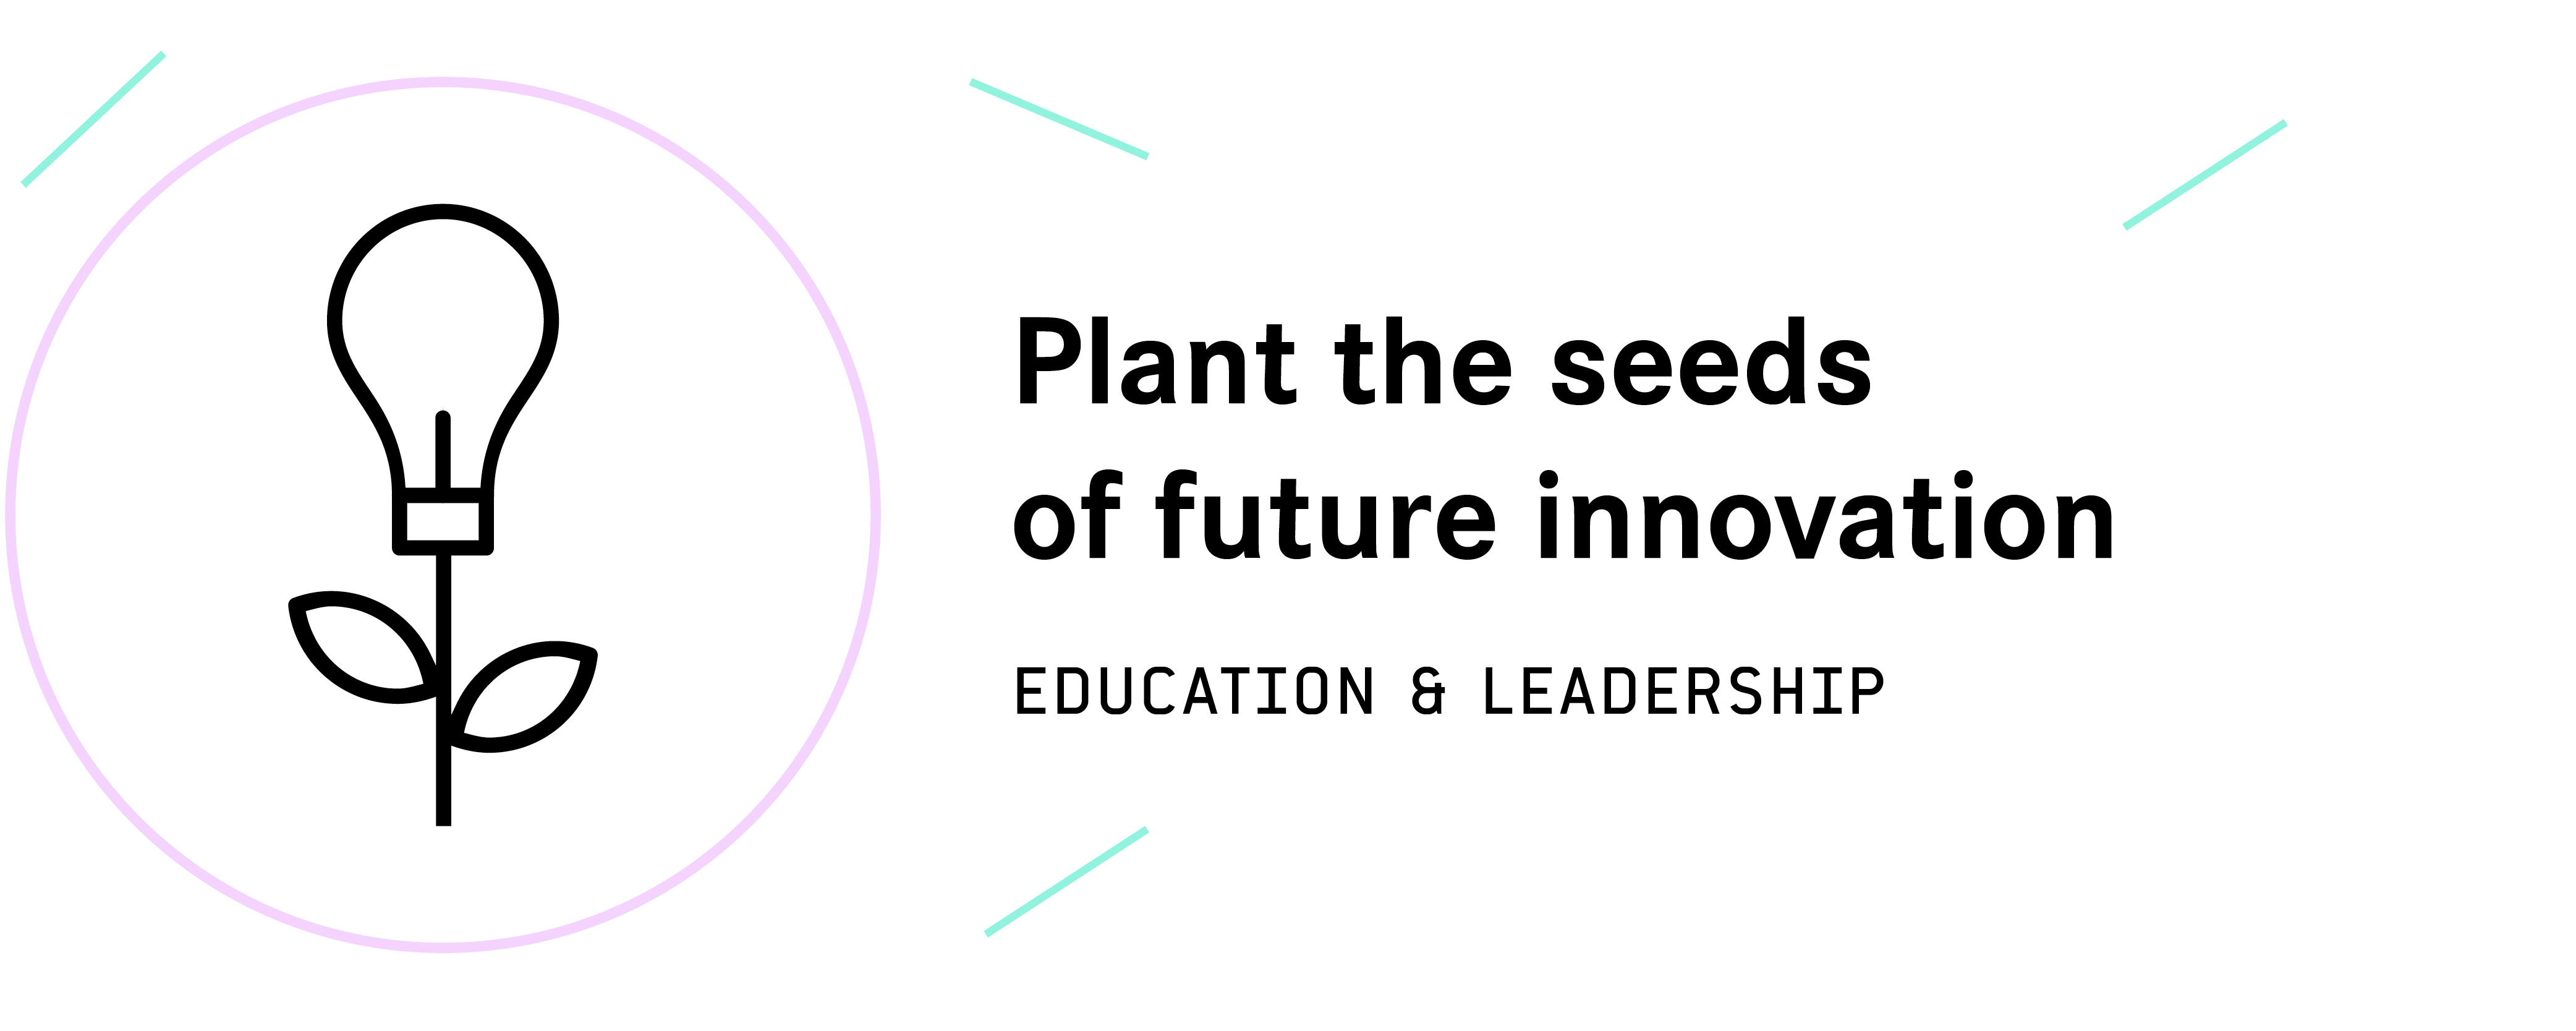 Plant the seeds of future innovation